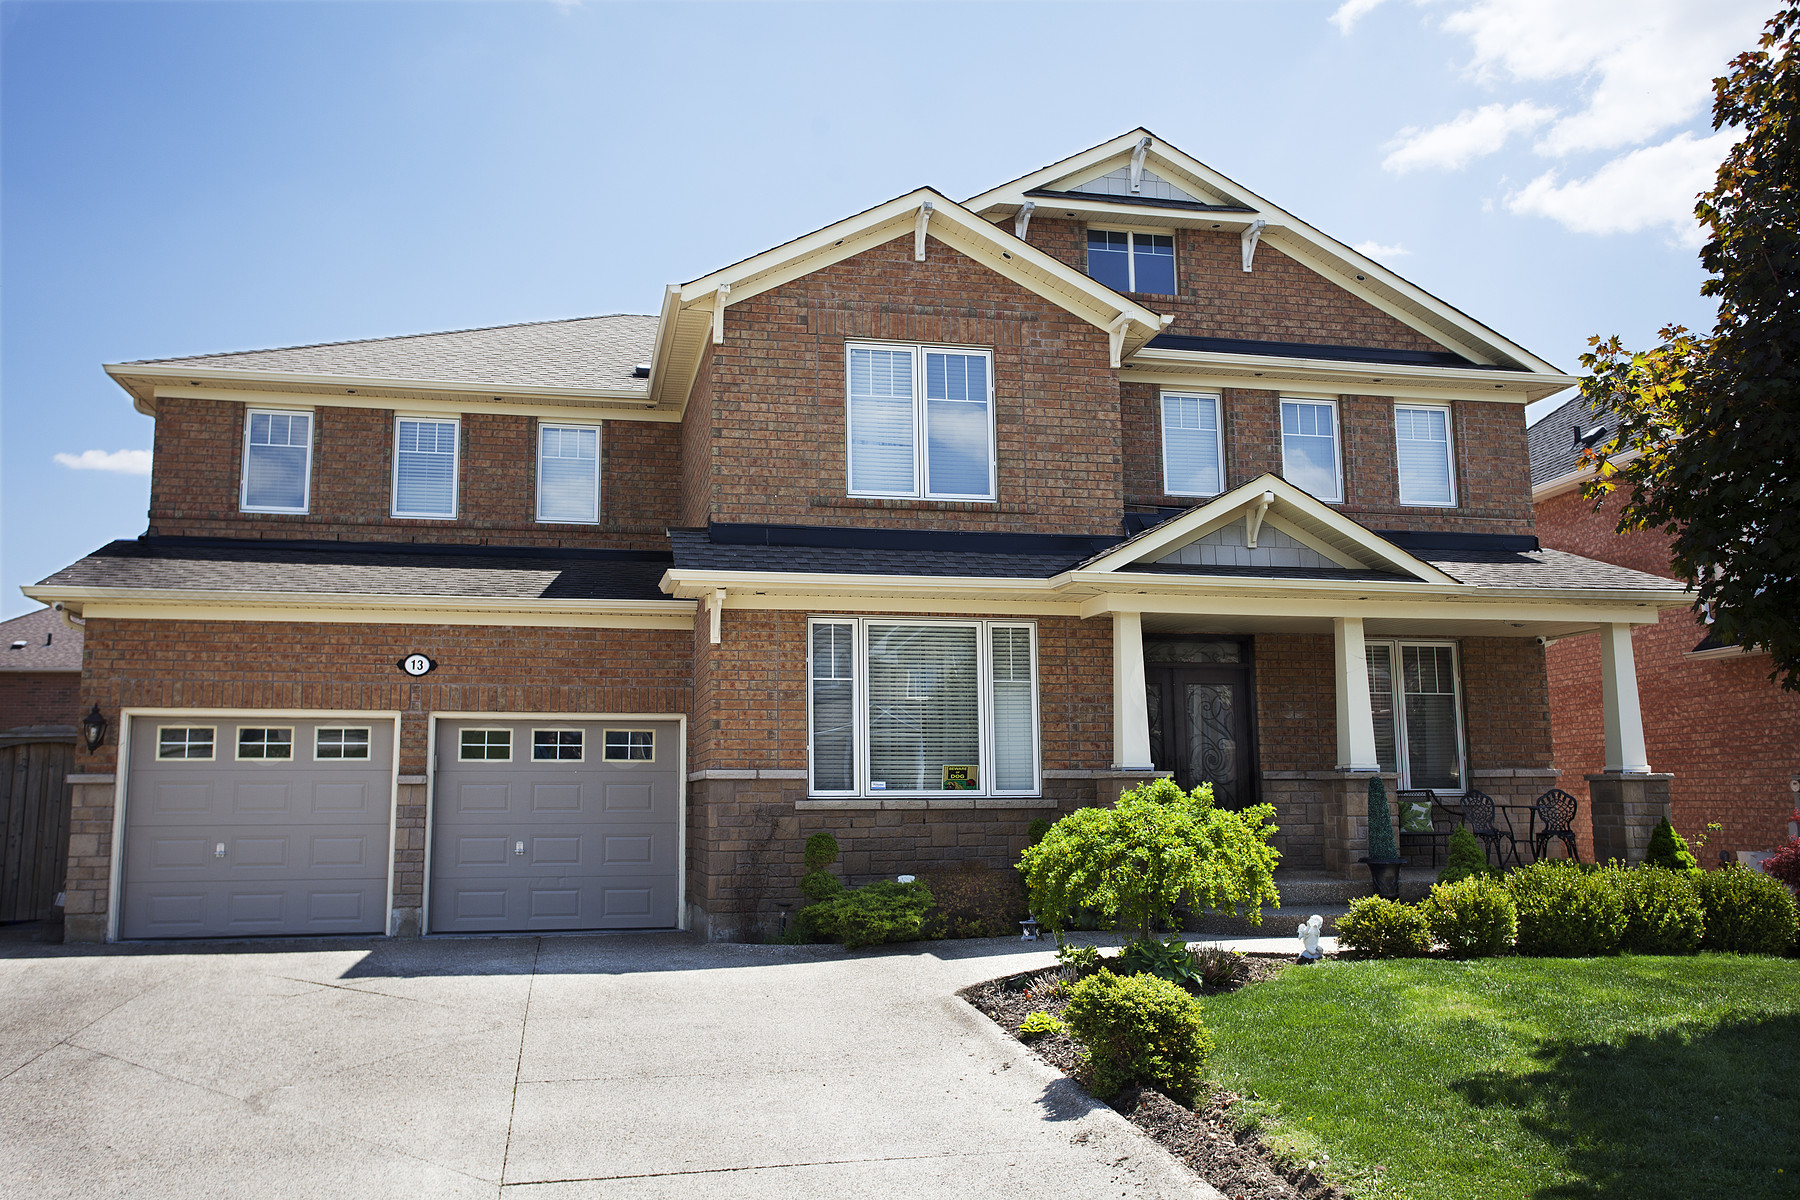 Single Family Home for Sale at Stunning Home in Castlemore 13 Valleywest Road Brampton, Ontario, L6P 2J9 Canada